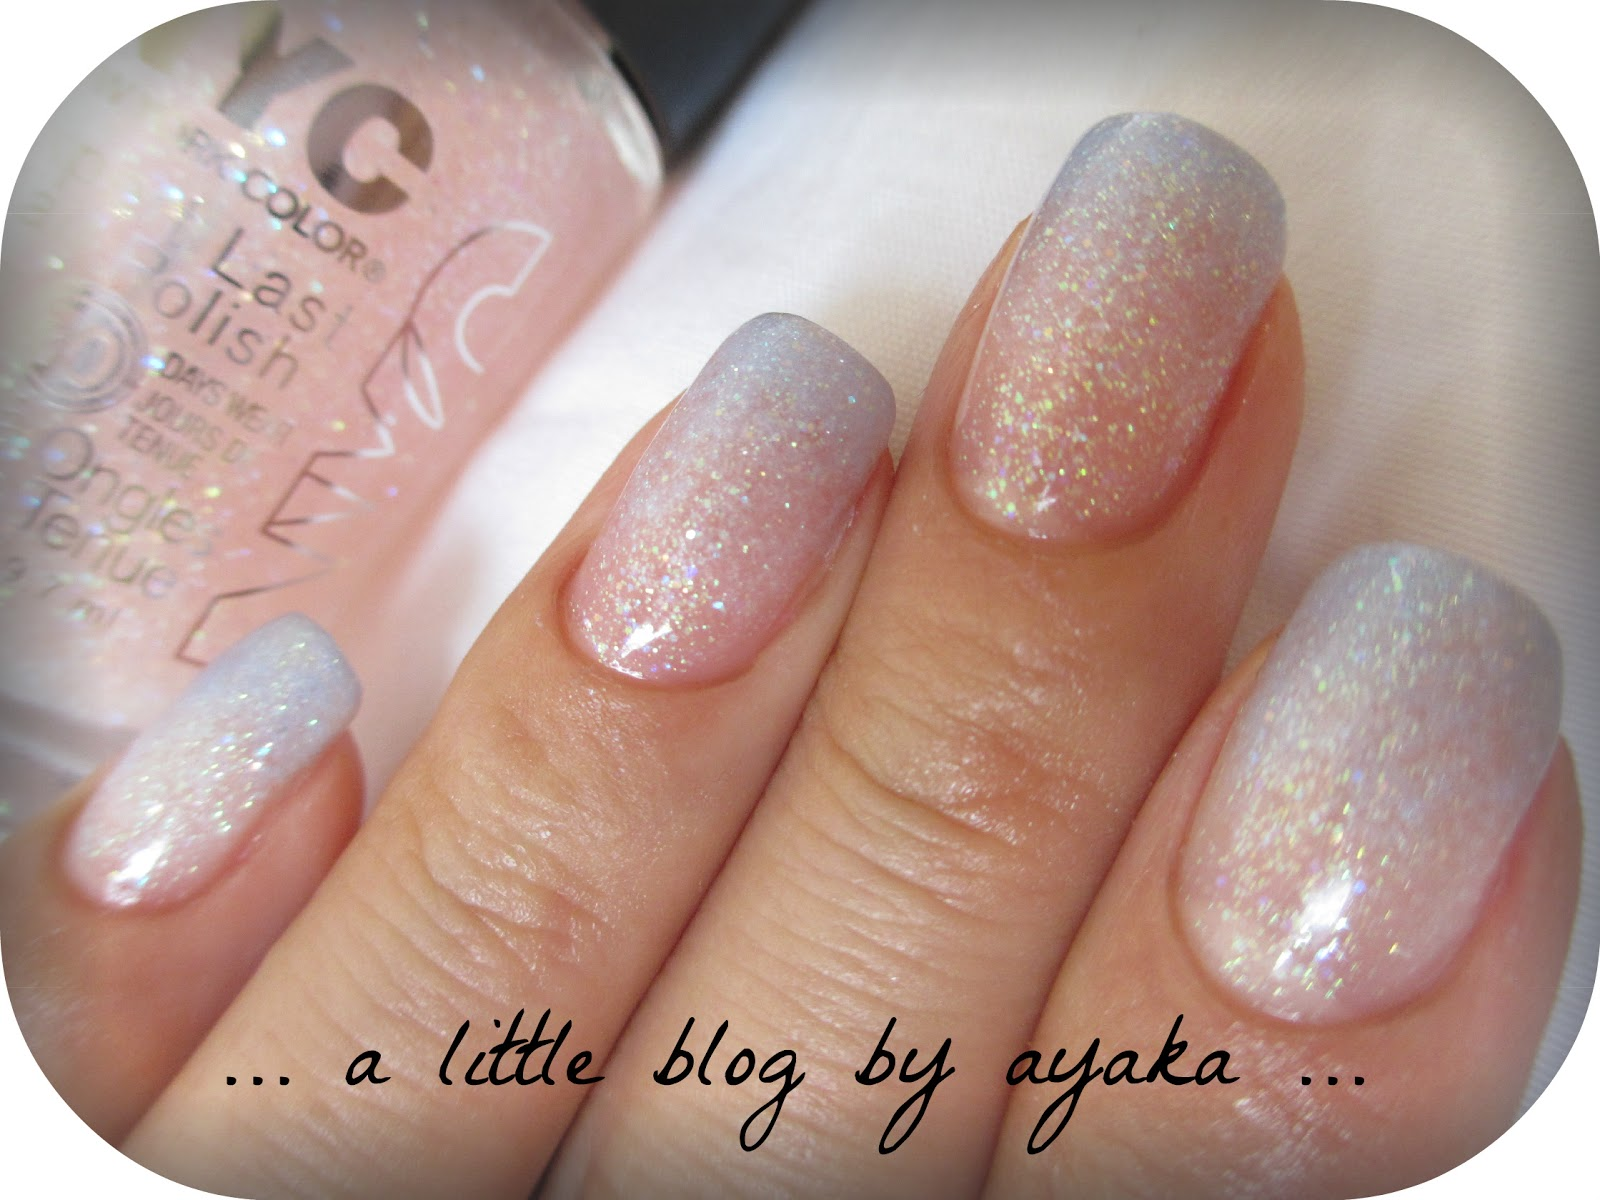 a little blog by ayaka ...: blue ombre nails